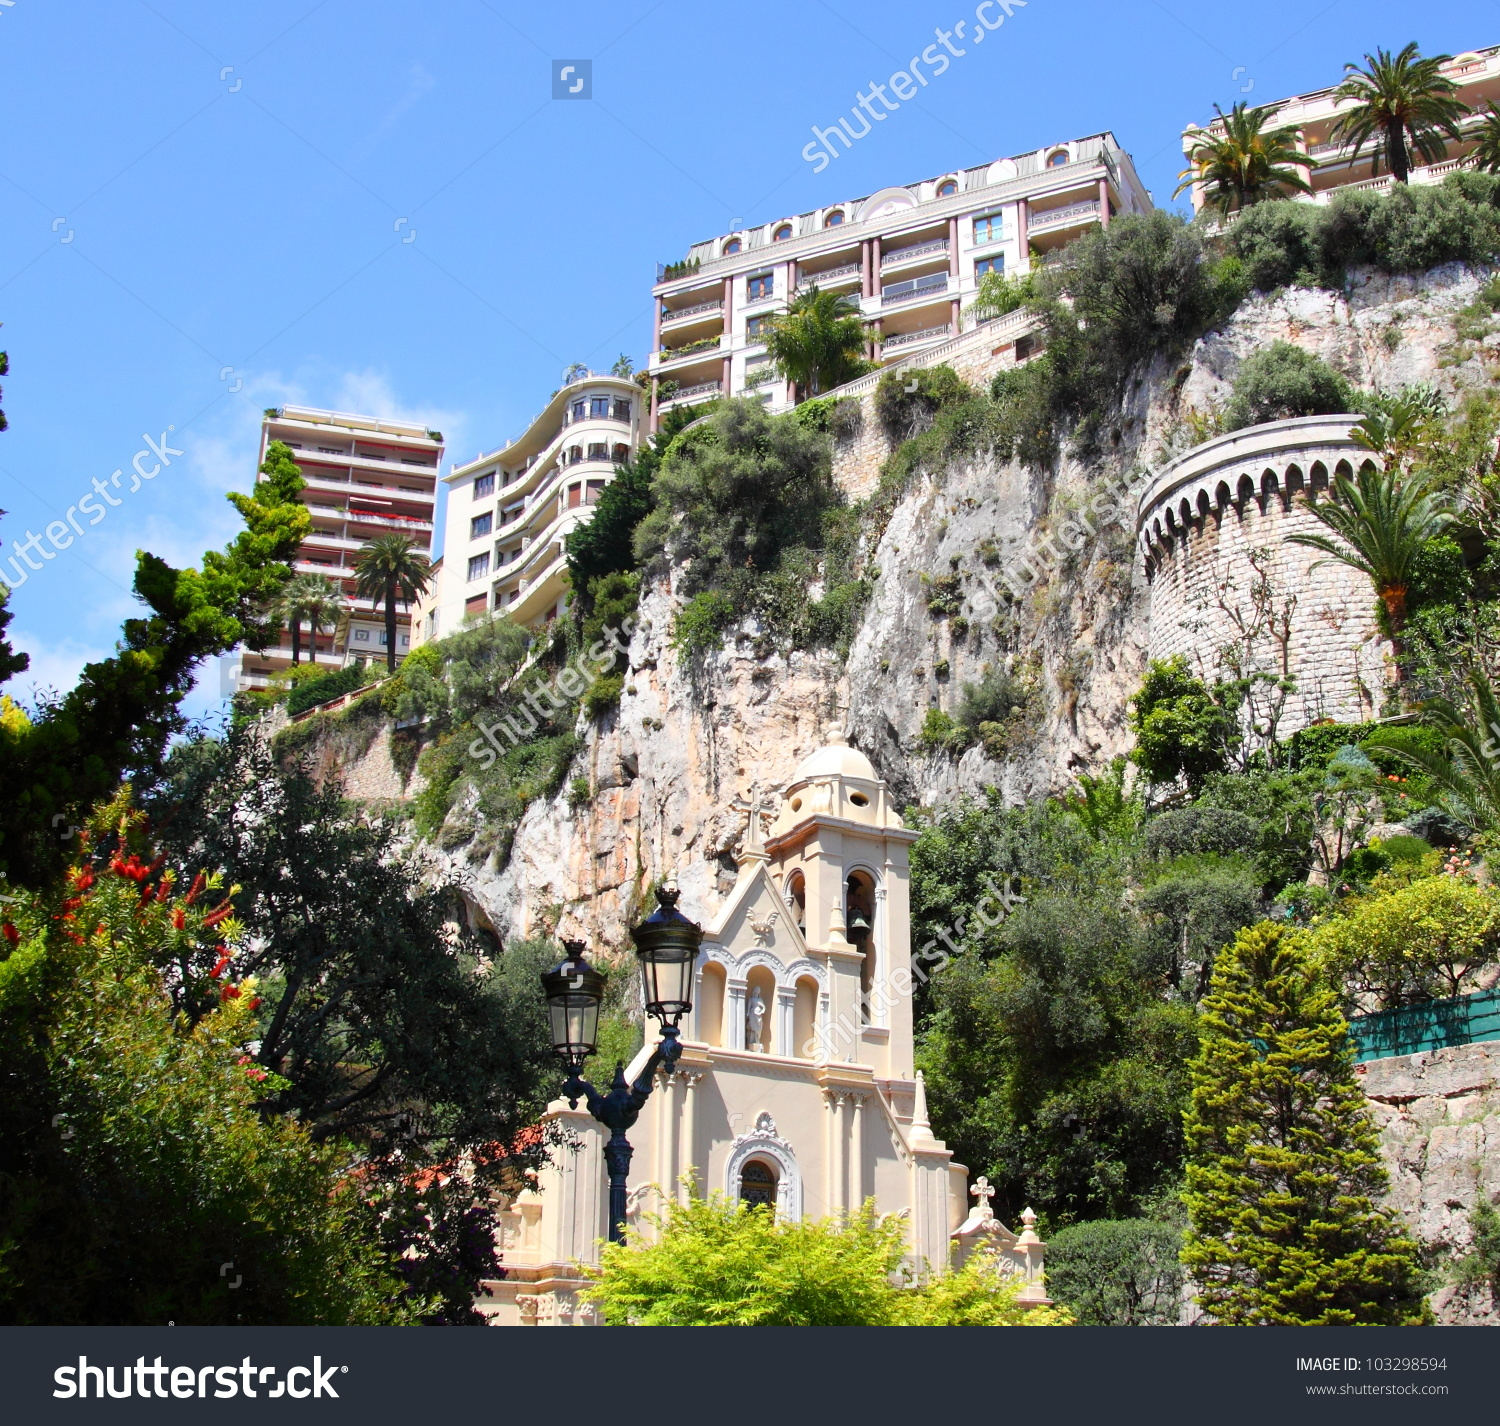 Sainte Devote Environment Monaco Monte Carlo Stock Photo 103298594.